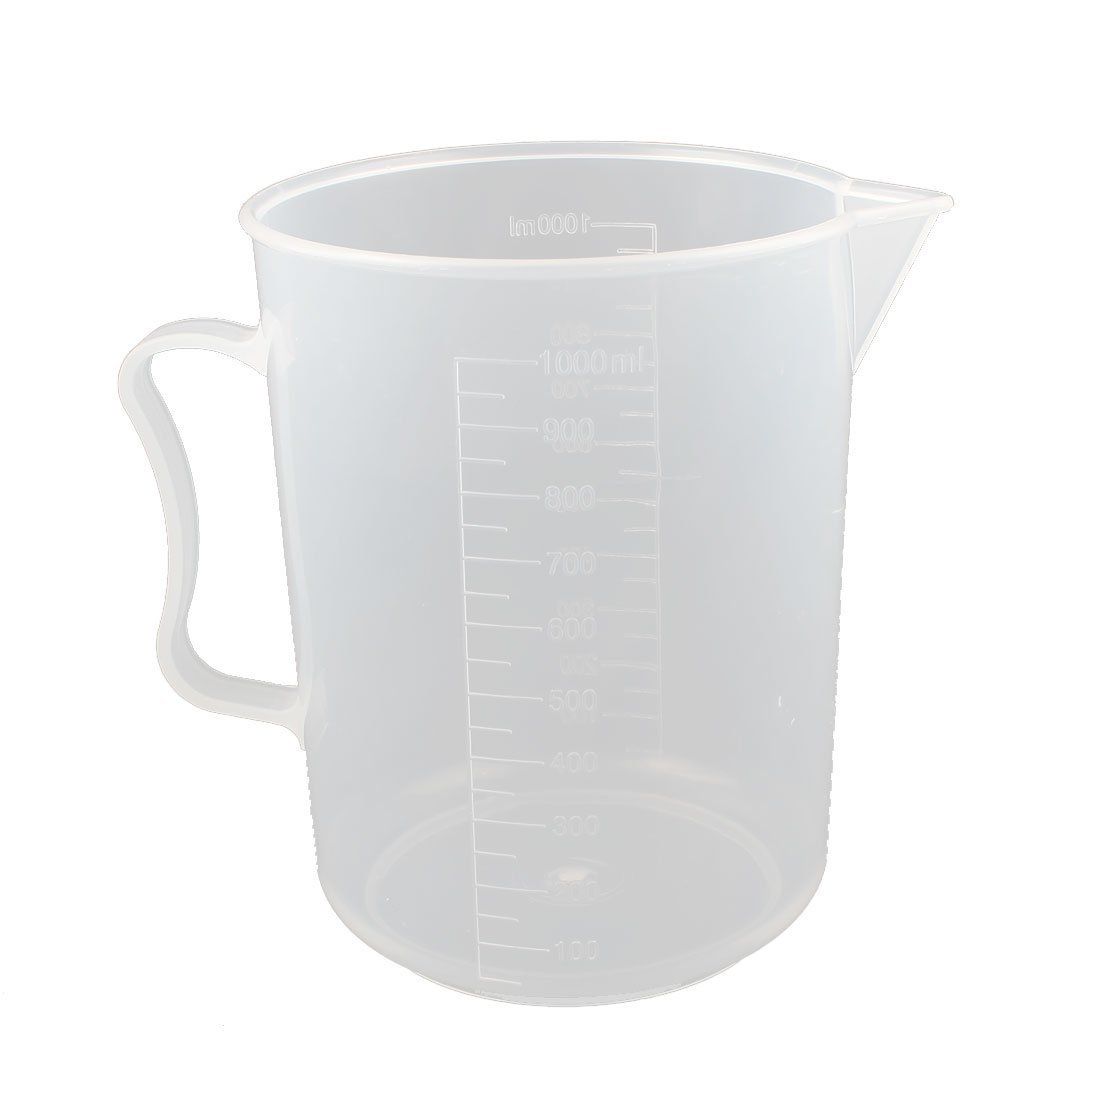 sourcingmap Plastic Lab Test Graduated Measuring Beaker Cup Mug Container Clear a16010500ux0852